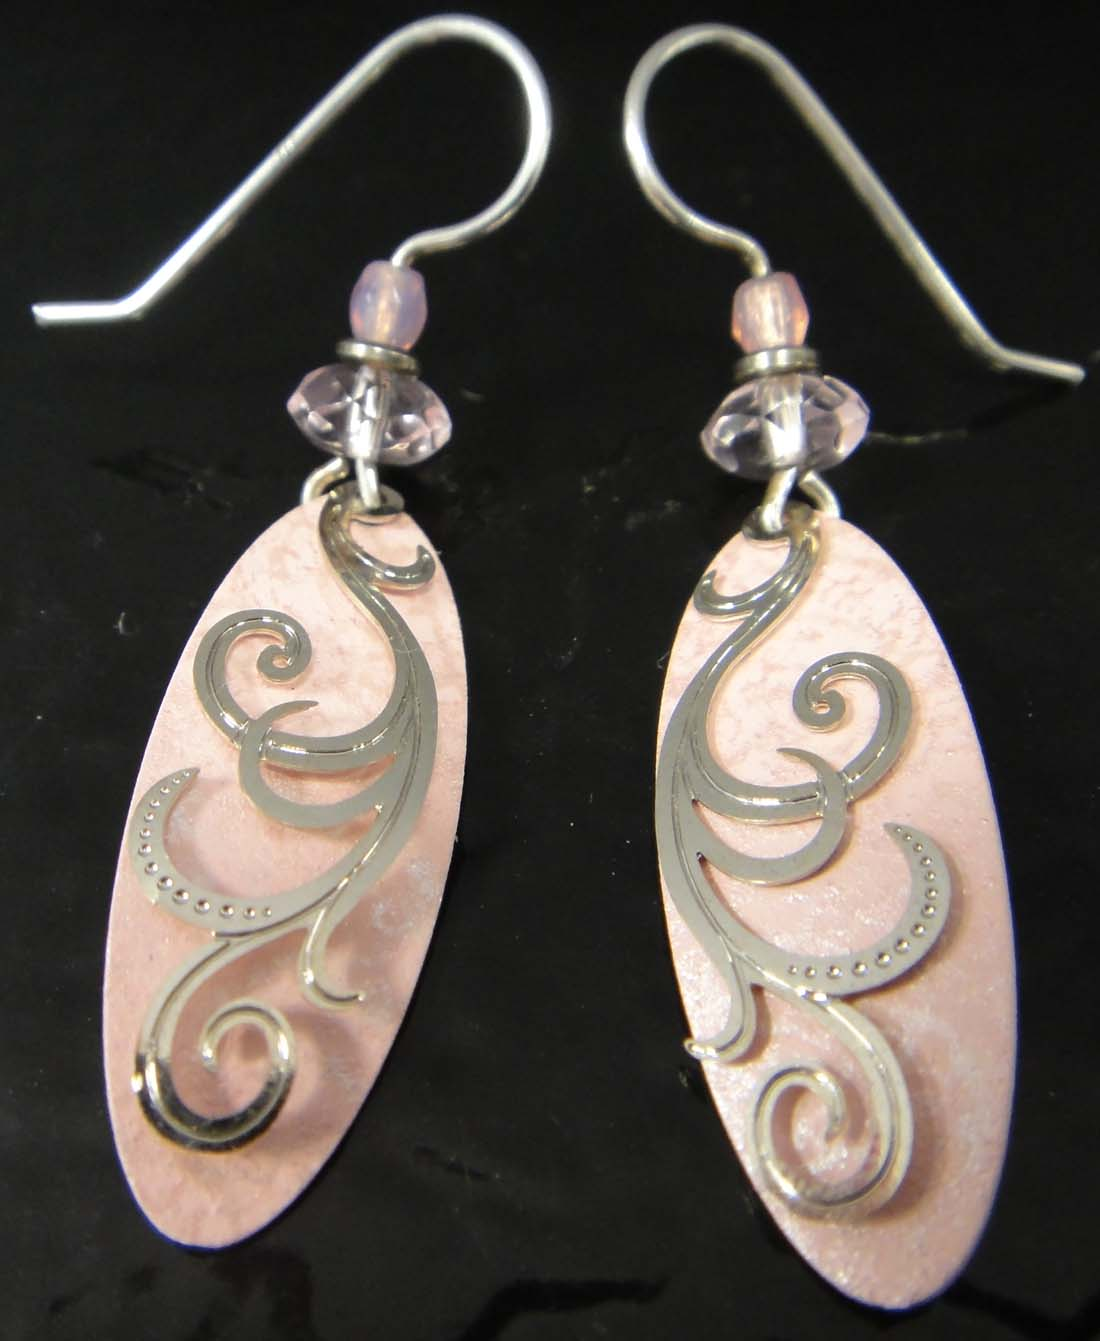 These pink dangle earrings are handmade by Adajio.